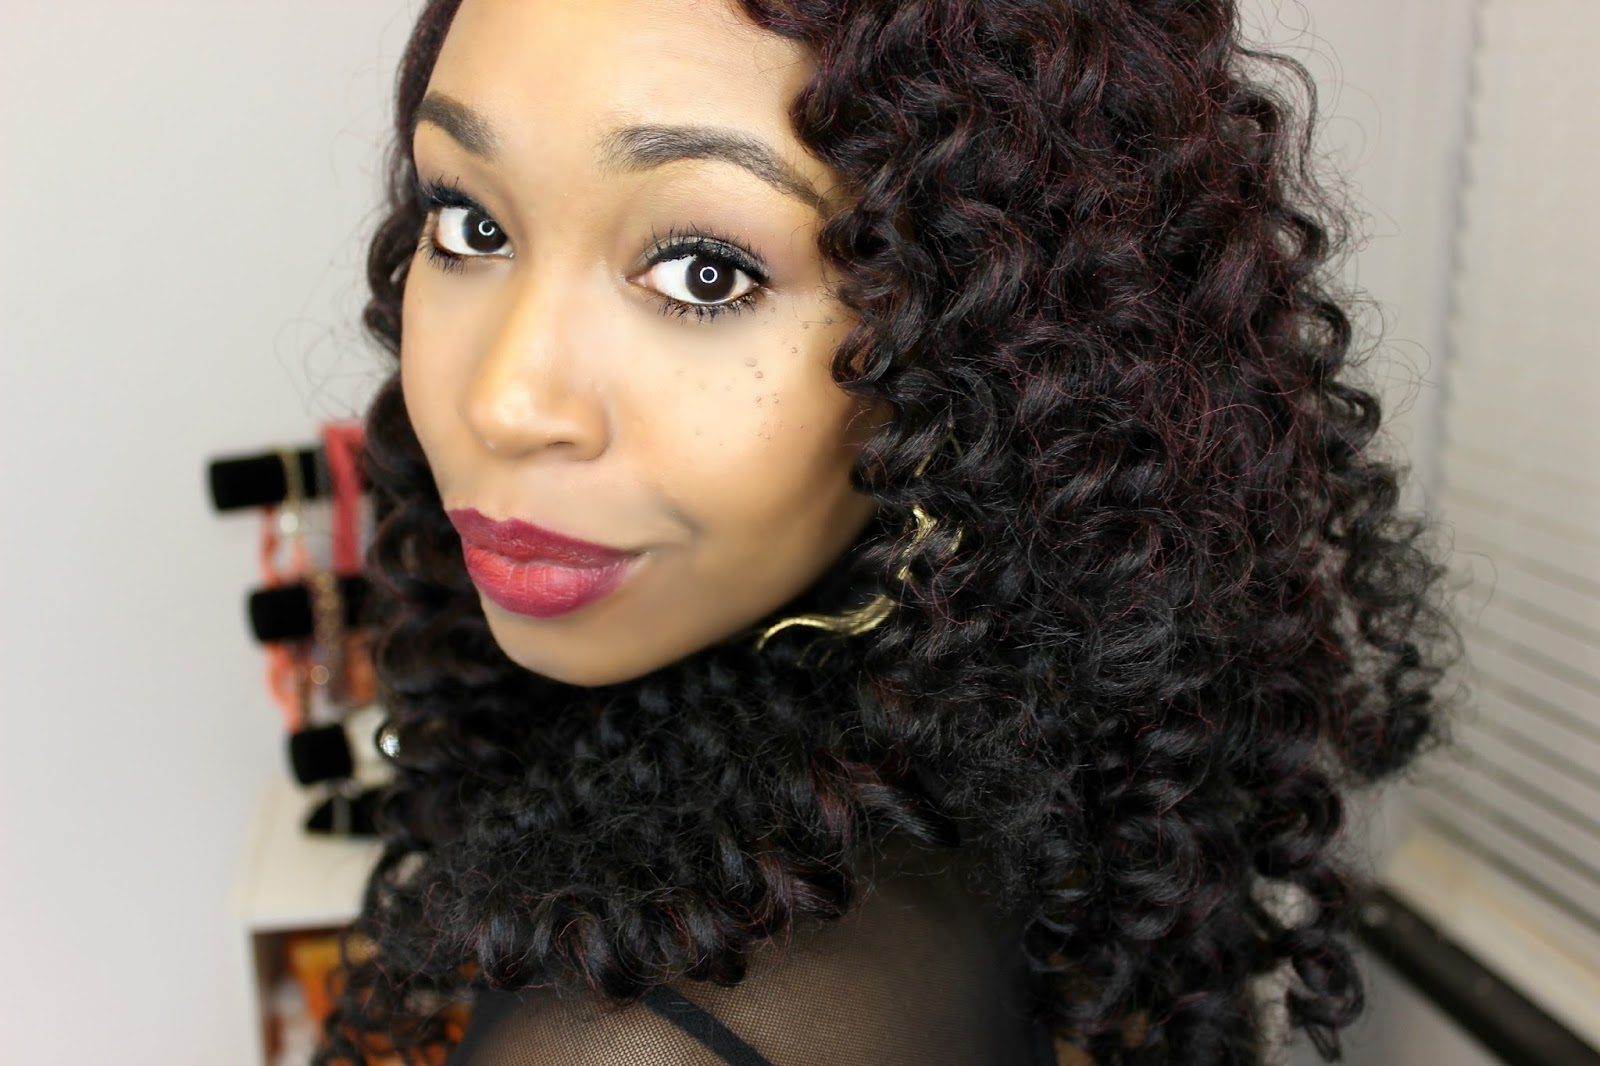 Crochet Hair Companies : ... Design: Crochet Braids Outre X-Pression Cuevana Twist Braid Hair